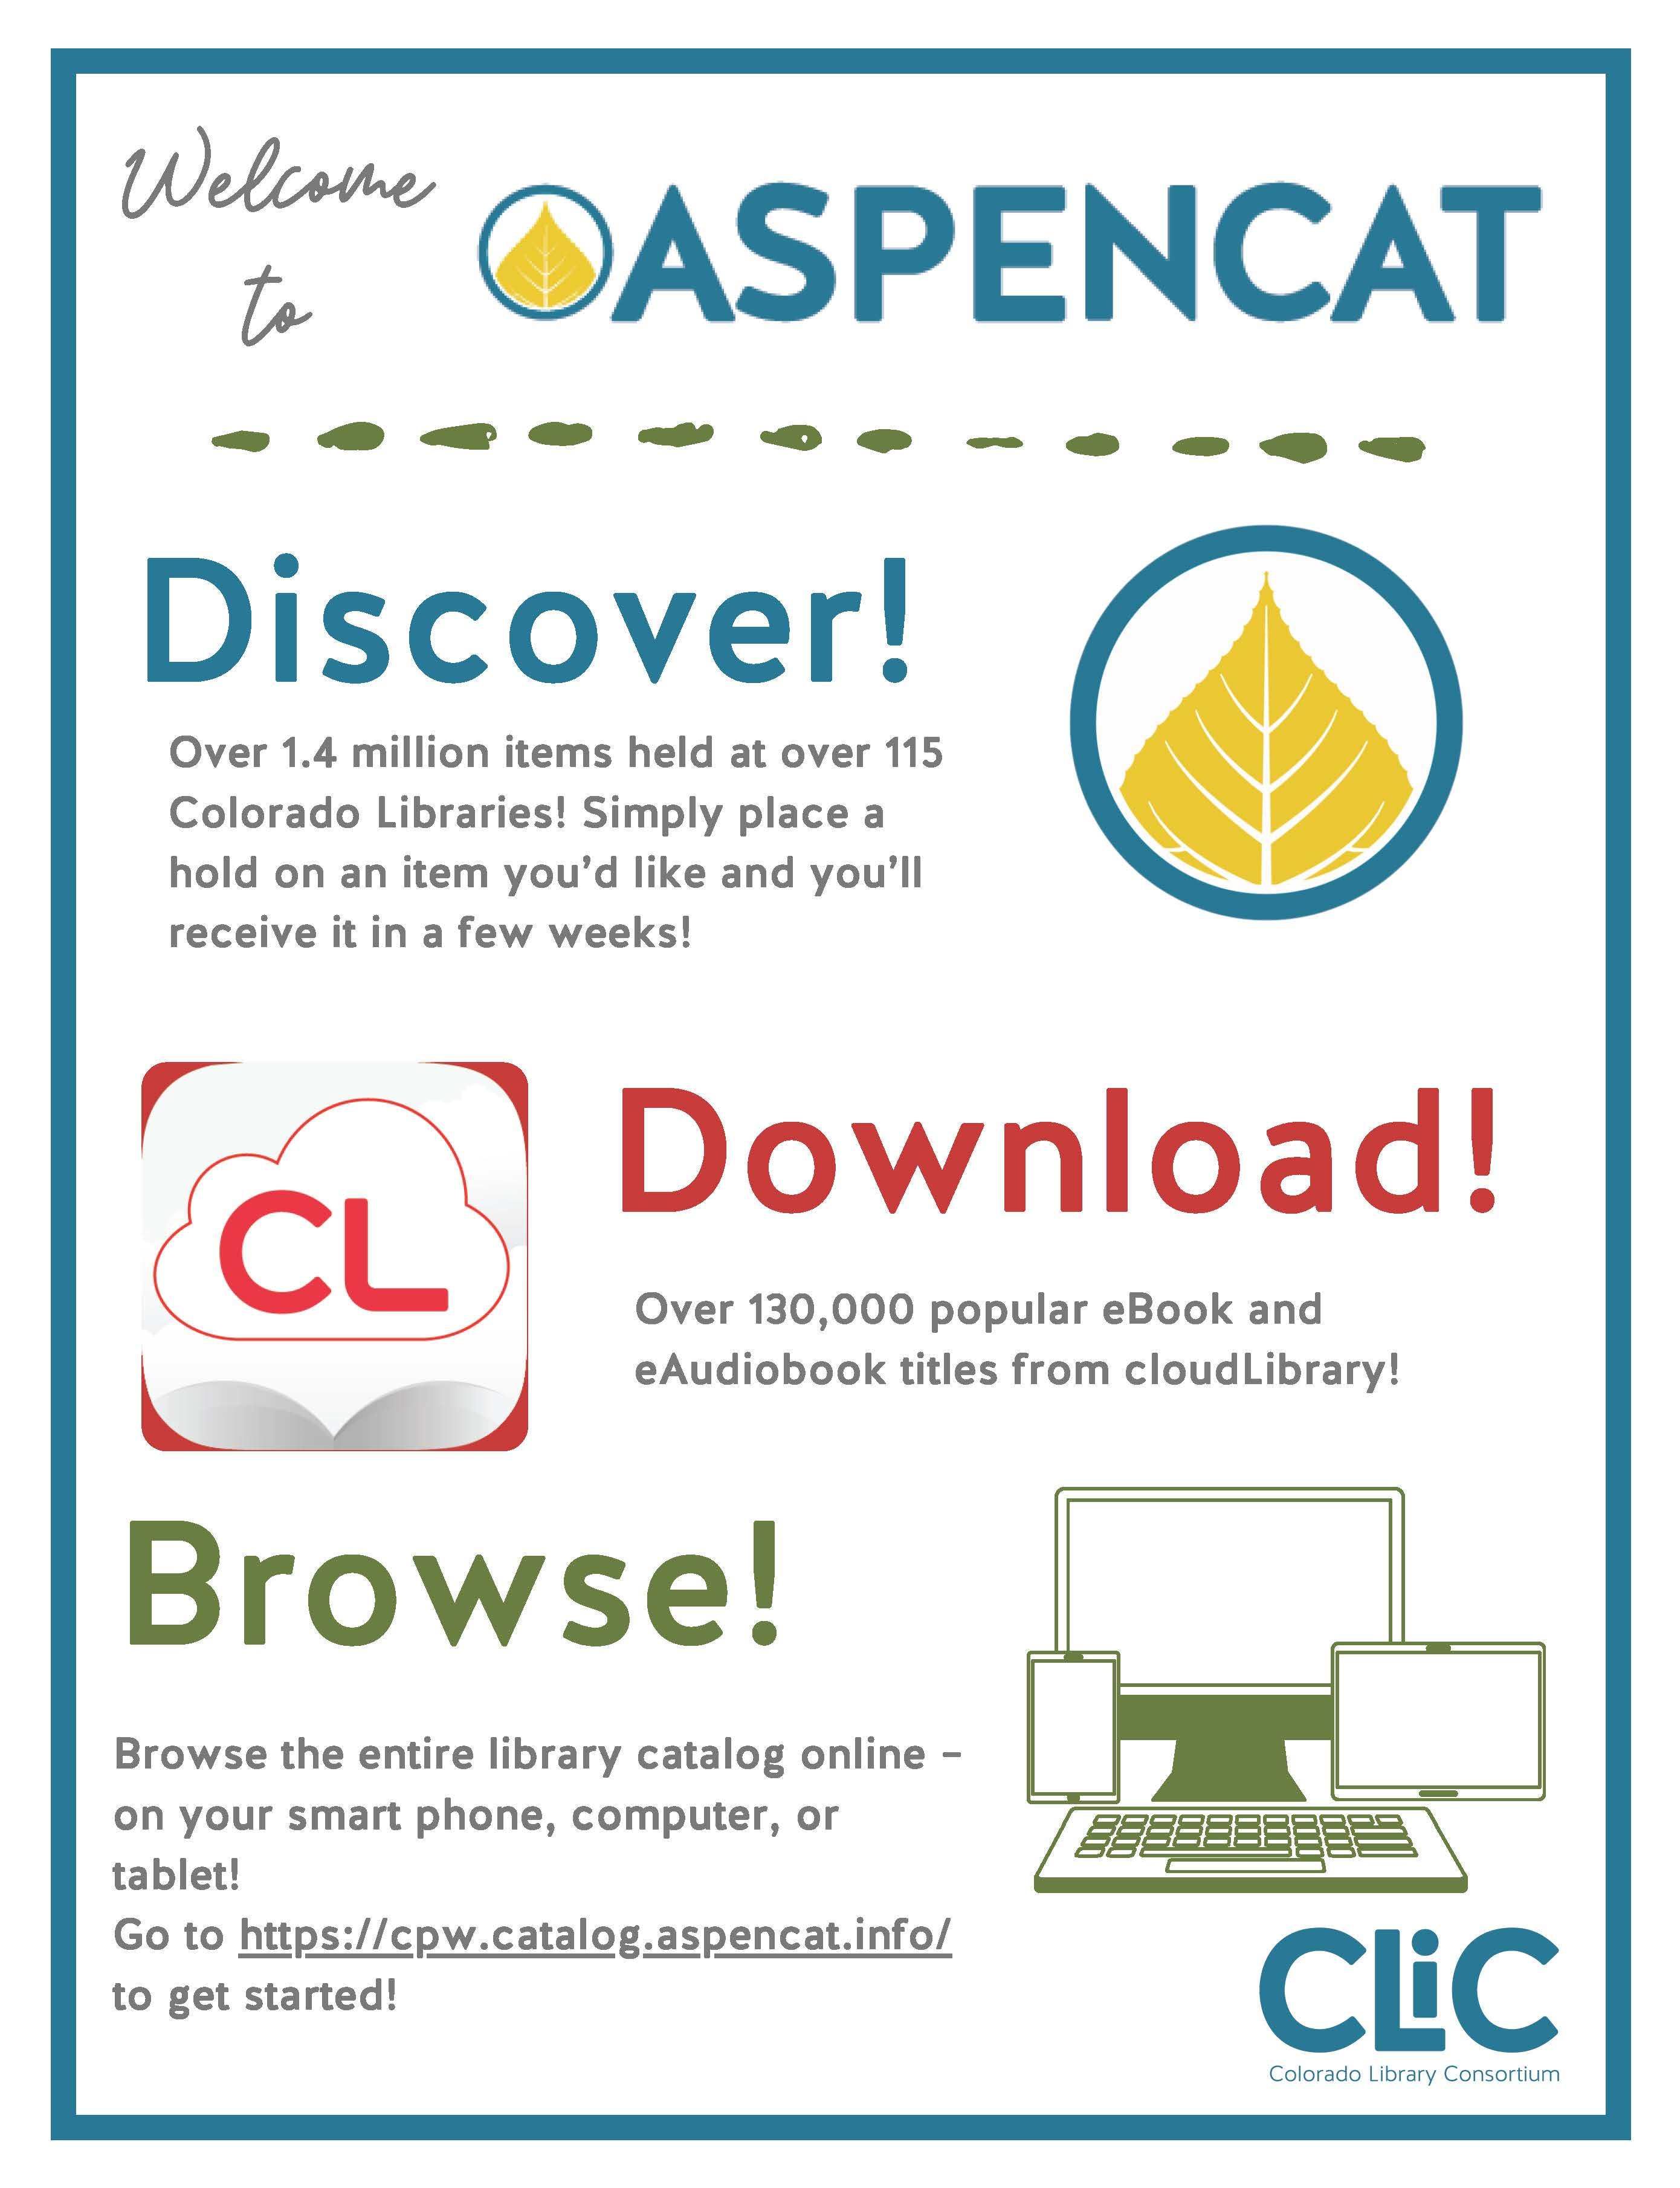 AspenCat: Discover over 1.4 million items at over 115 CO libraries. Download over 130,000 popular eBooks & eAudiobooks.